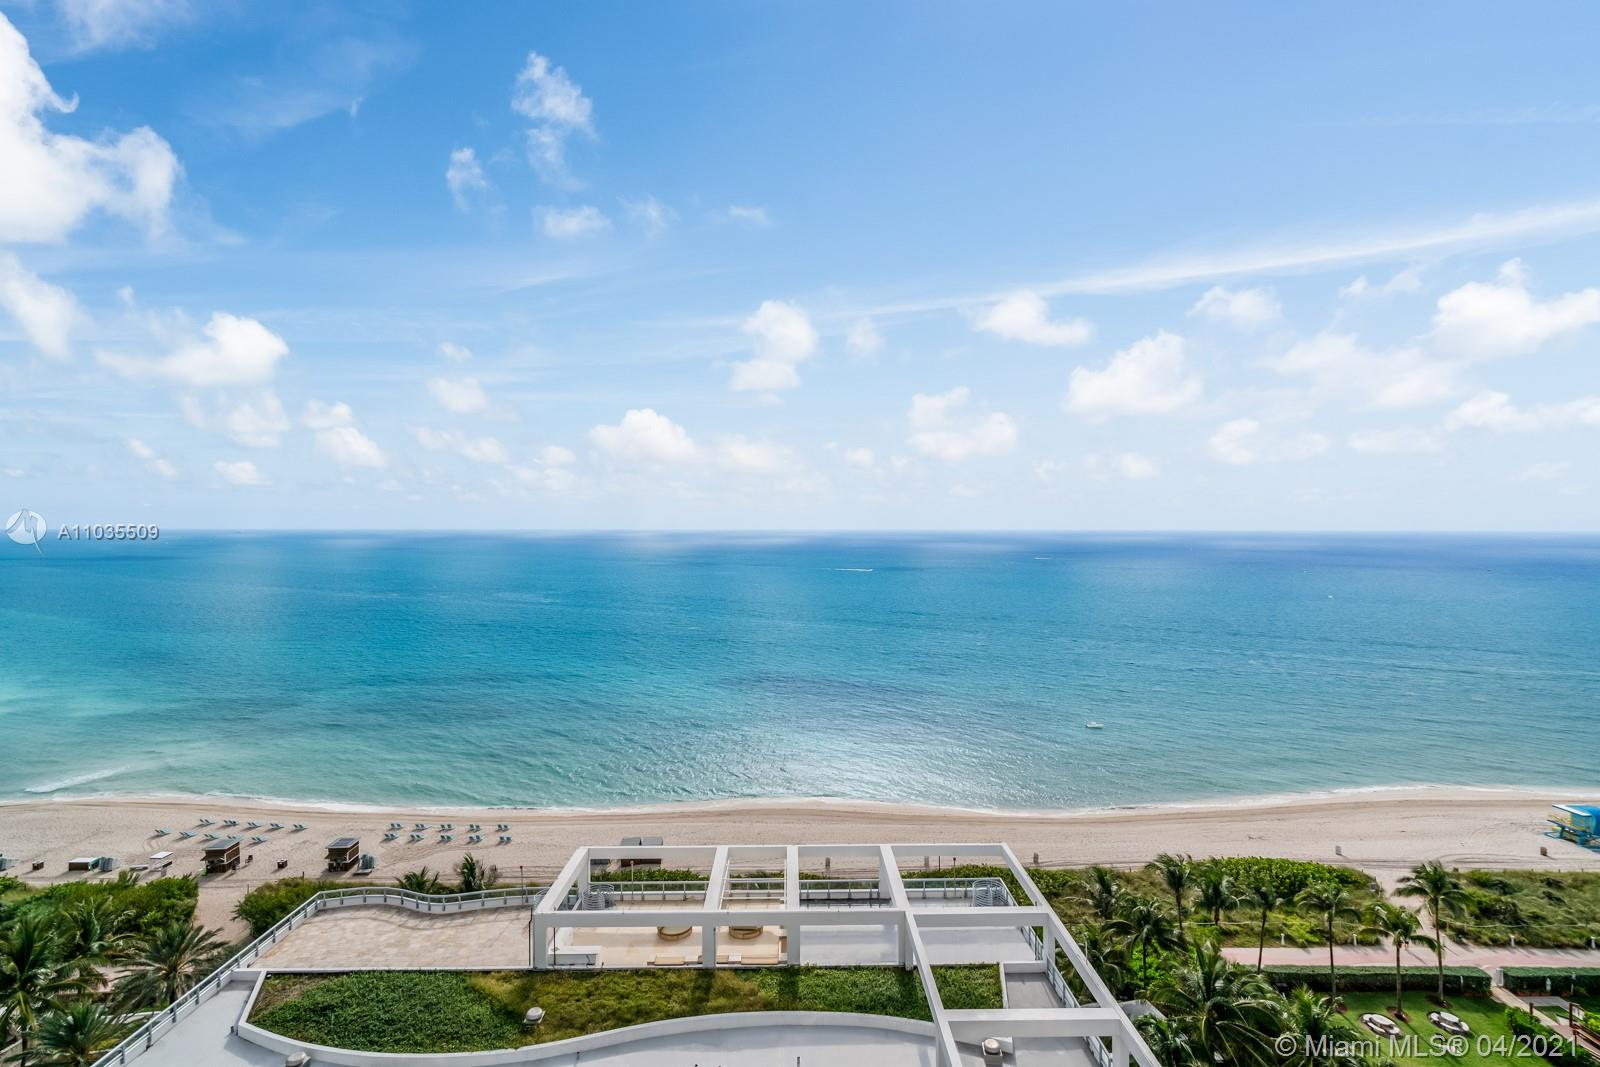 """Rare opportunity to own a beautifully renovated, fully furnished smart home w/ expansive ocean views in the 04 line at The Carillon Miami Wellness Resort - South Tower. This turnkey, move-in ready residence features custom lighting, new kitchen w/ quartz countertops, Miele appliances, a spa like master bathroom and new W/D in unit. Smart Home technology includes high-end WiFi and wall-mounted iPads for control of lighting, security/alarm, HVAC, Sonos sound system, motorized blinds, and appliances. Entertain guests on the spacious, oceanfront balcony - your outdoor """"living room.""""Enjoy the ultimate resort lifestyle w/ over 5 acres of pristine oceanfront property, 70,000sqft of wellness facilities & 225+ fitness classes weekly. Maint fee includes $200 monthly credit for dining & spa services."""